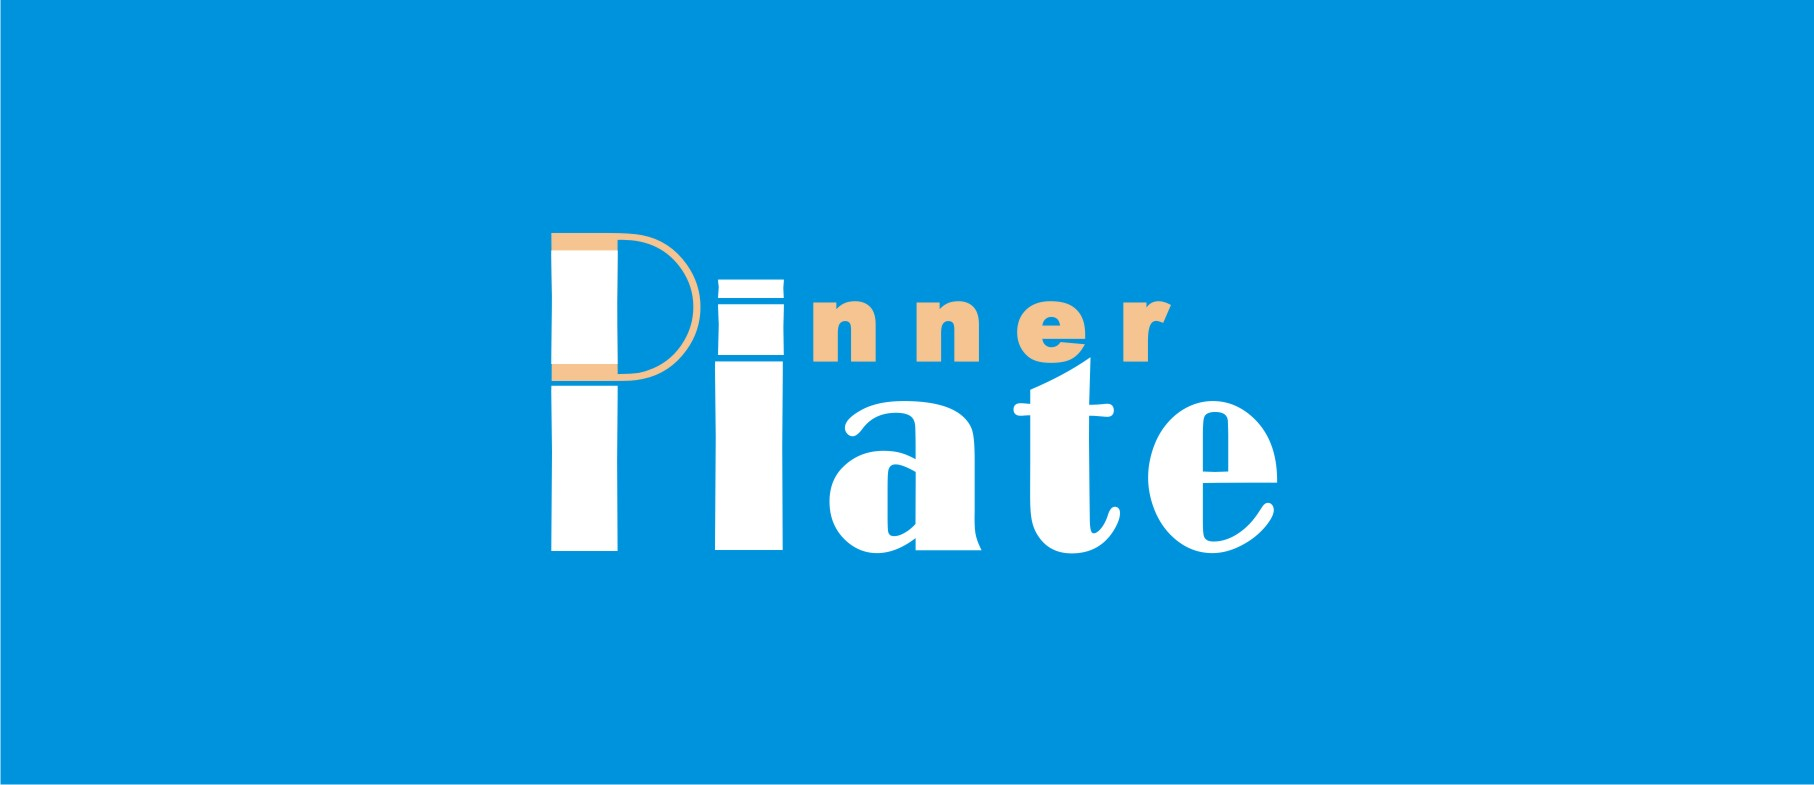 Logo Design by Shailender Kumar - Entry No. 59 in the Logo Design Contest Imaginative Logo Design for Dinner Plate.